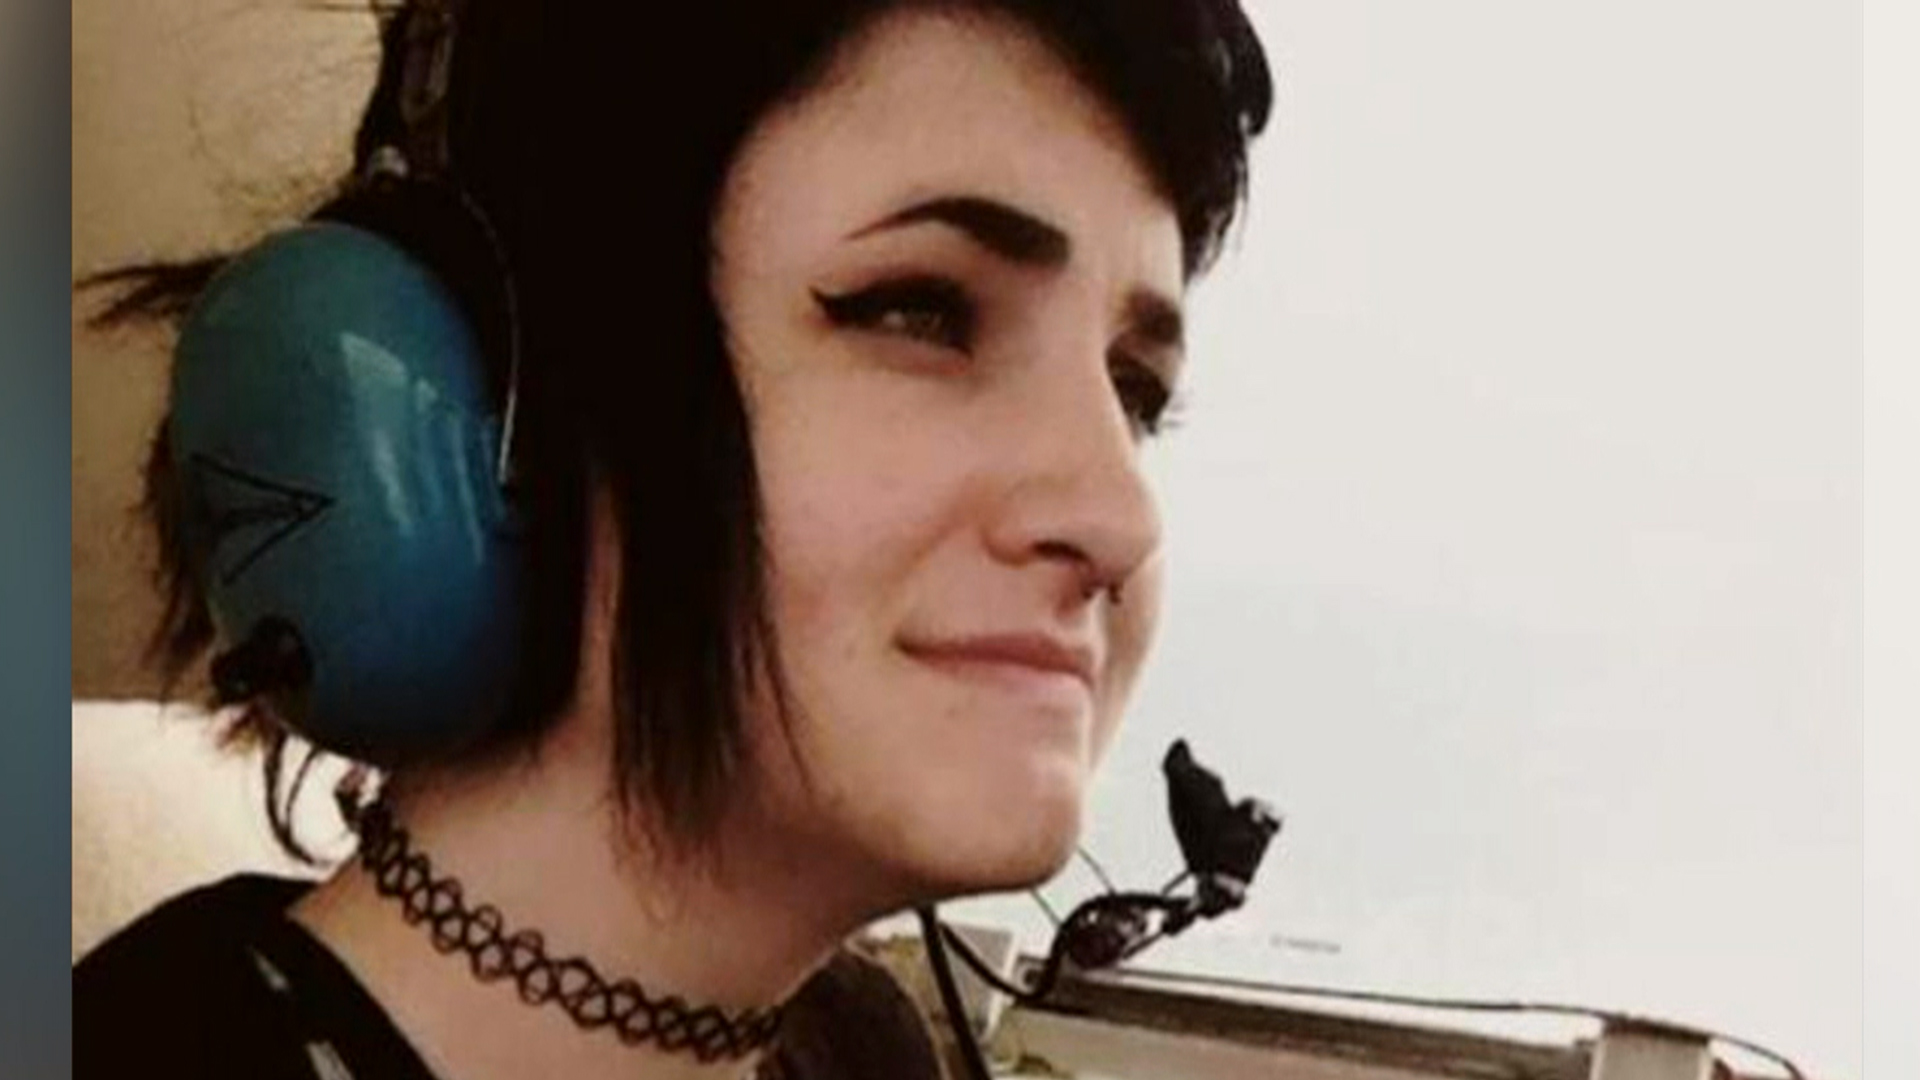 Autumn Veatch Crash: Two Bodies Found in Hunt for 'Miracle' Teen's Plane